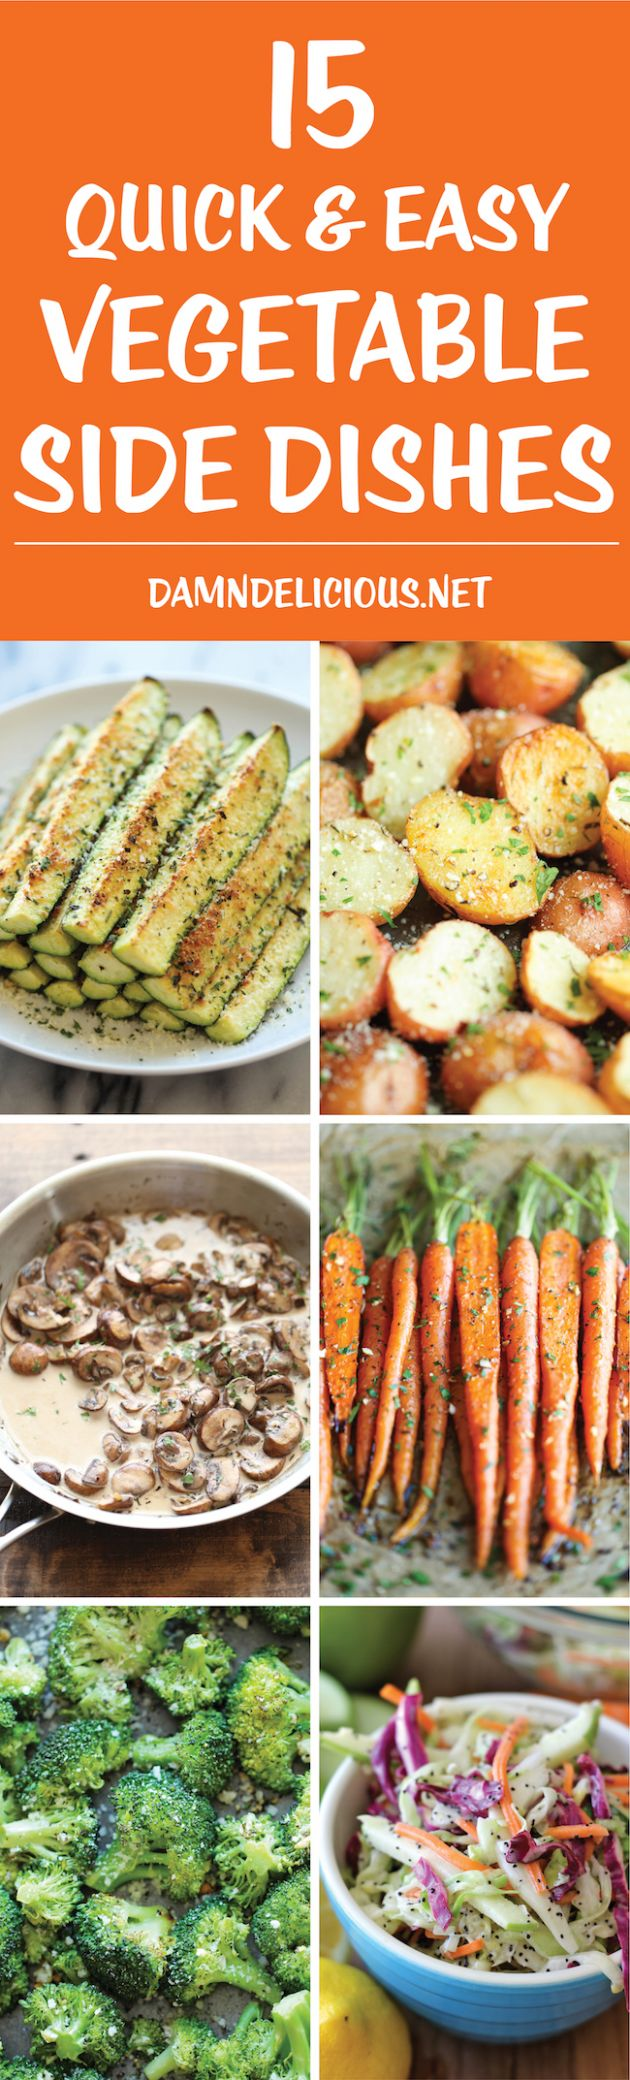 11 Quick and Easy Vegetable Side Dishes - Damn Delicious - Recipes Vegetable Side Dishes